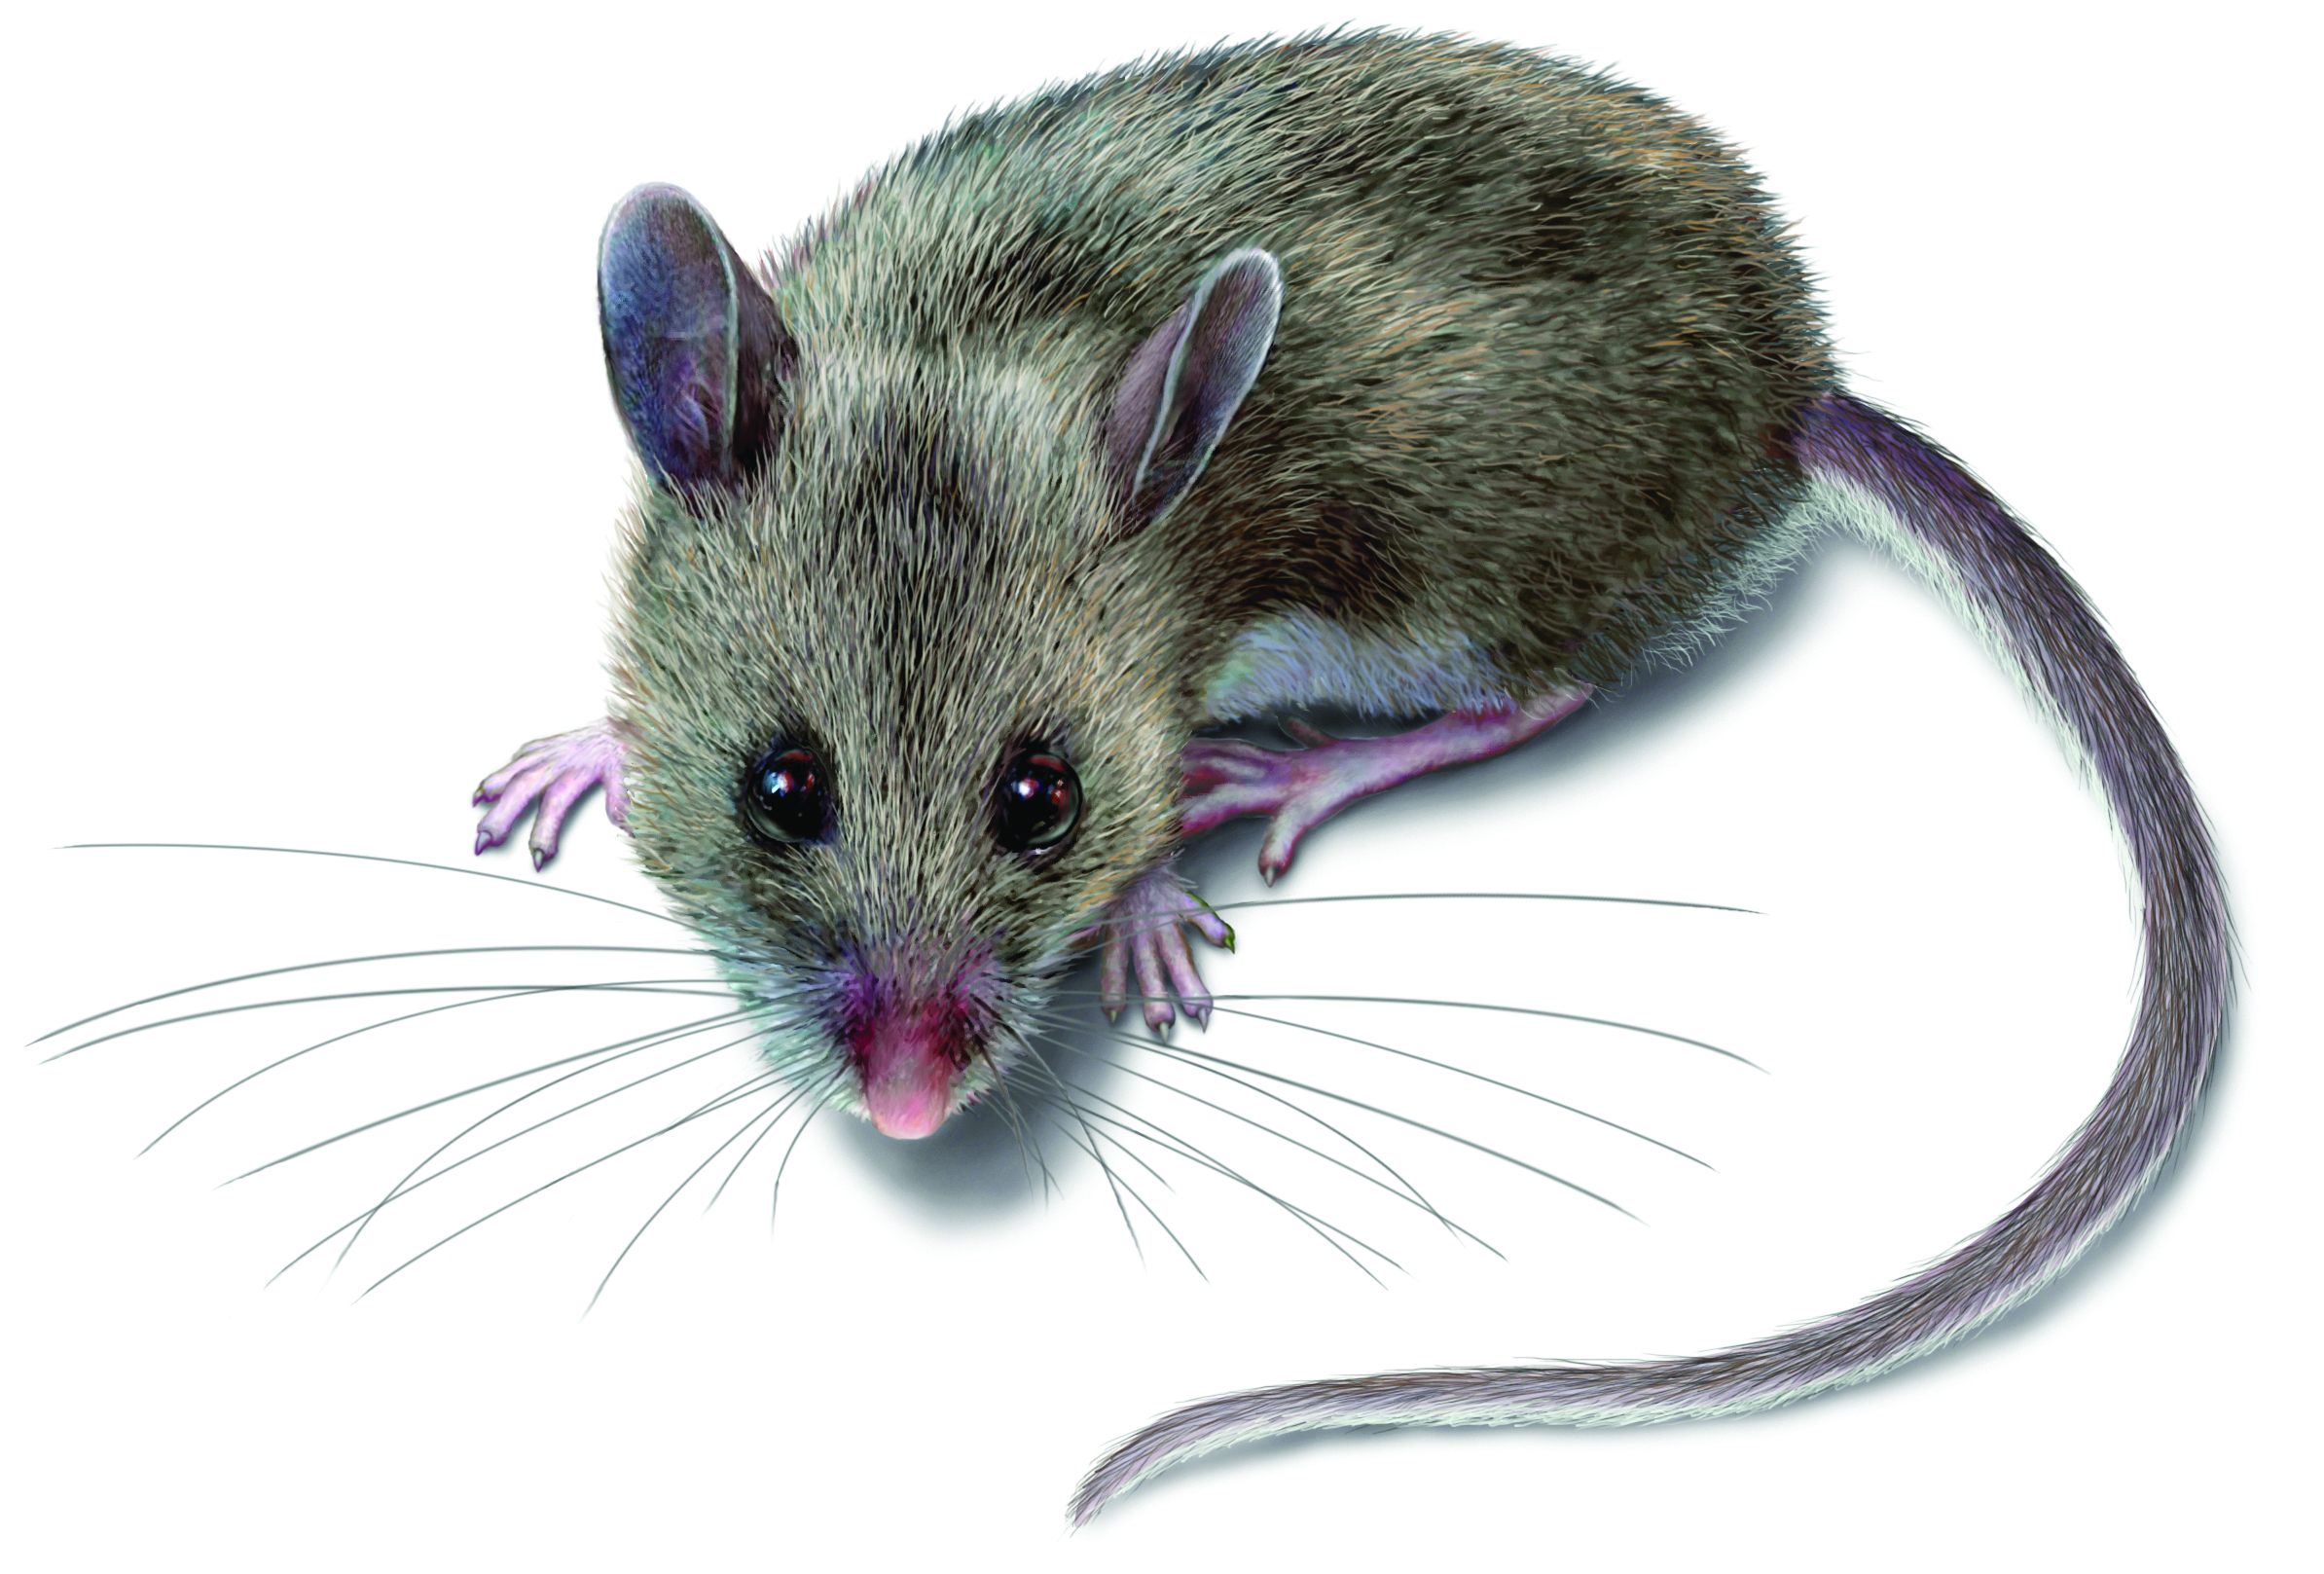 Mouse Disease Symptoms & More: What Diseases Do Mice Carry?